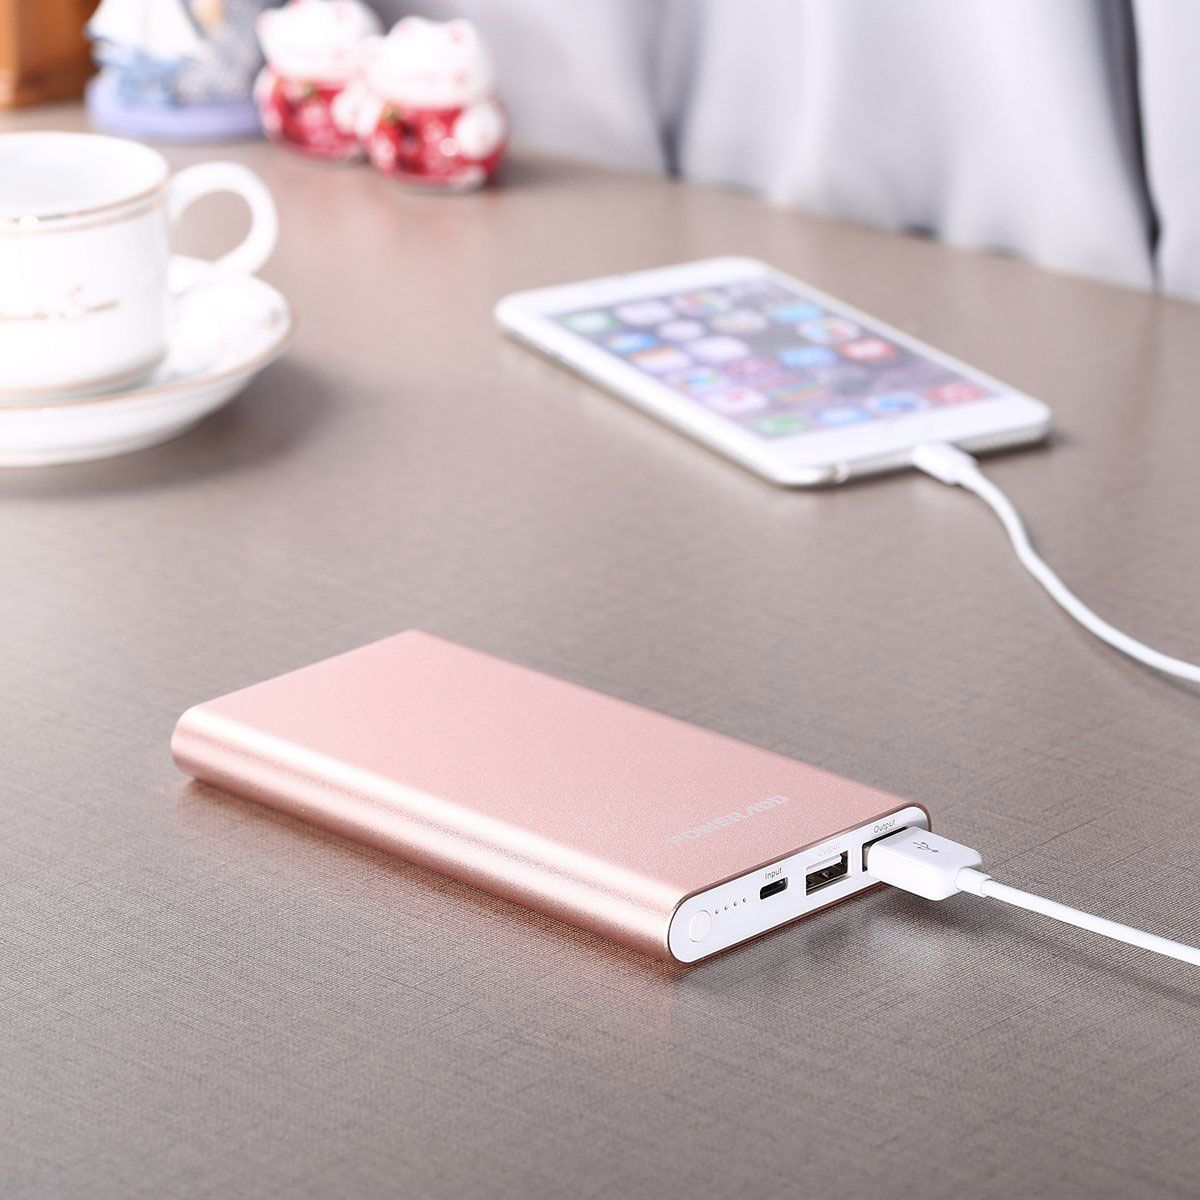 Best Gifts For College Students Who Are Studying Abroad Apple Lightning 12000mAh Portable Charger